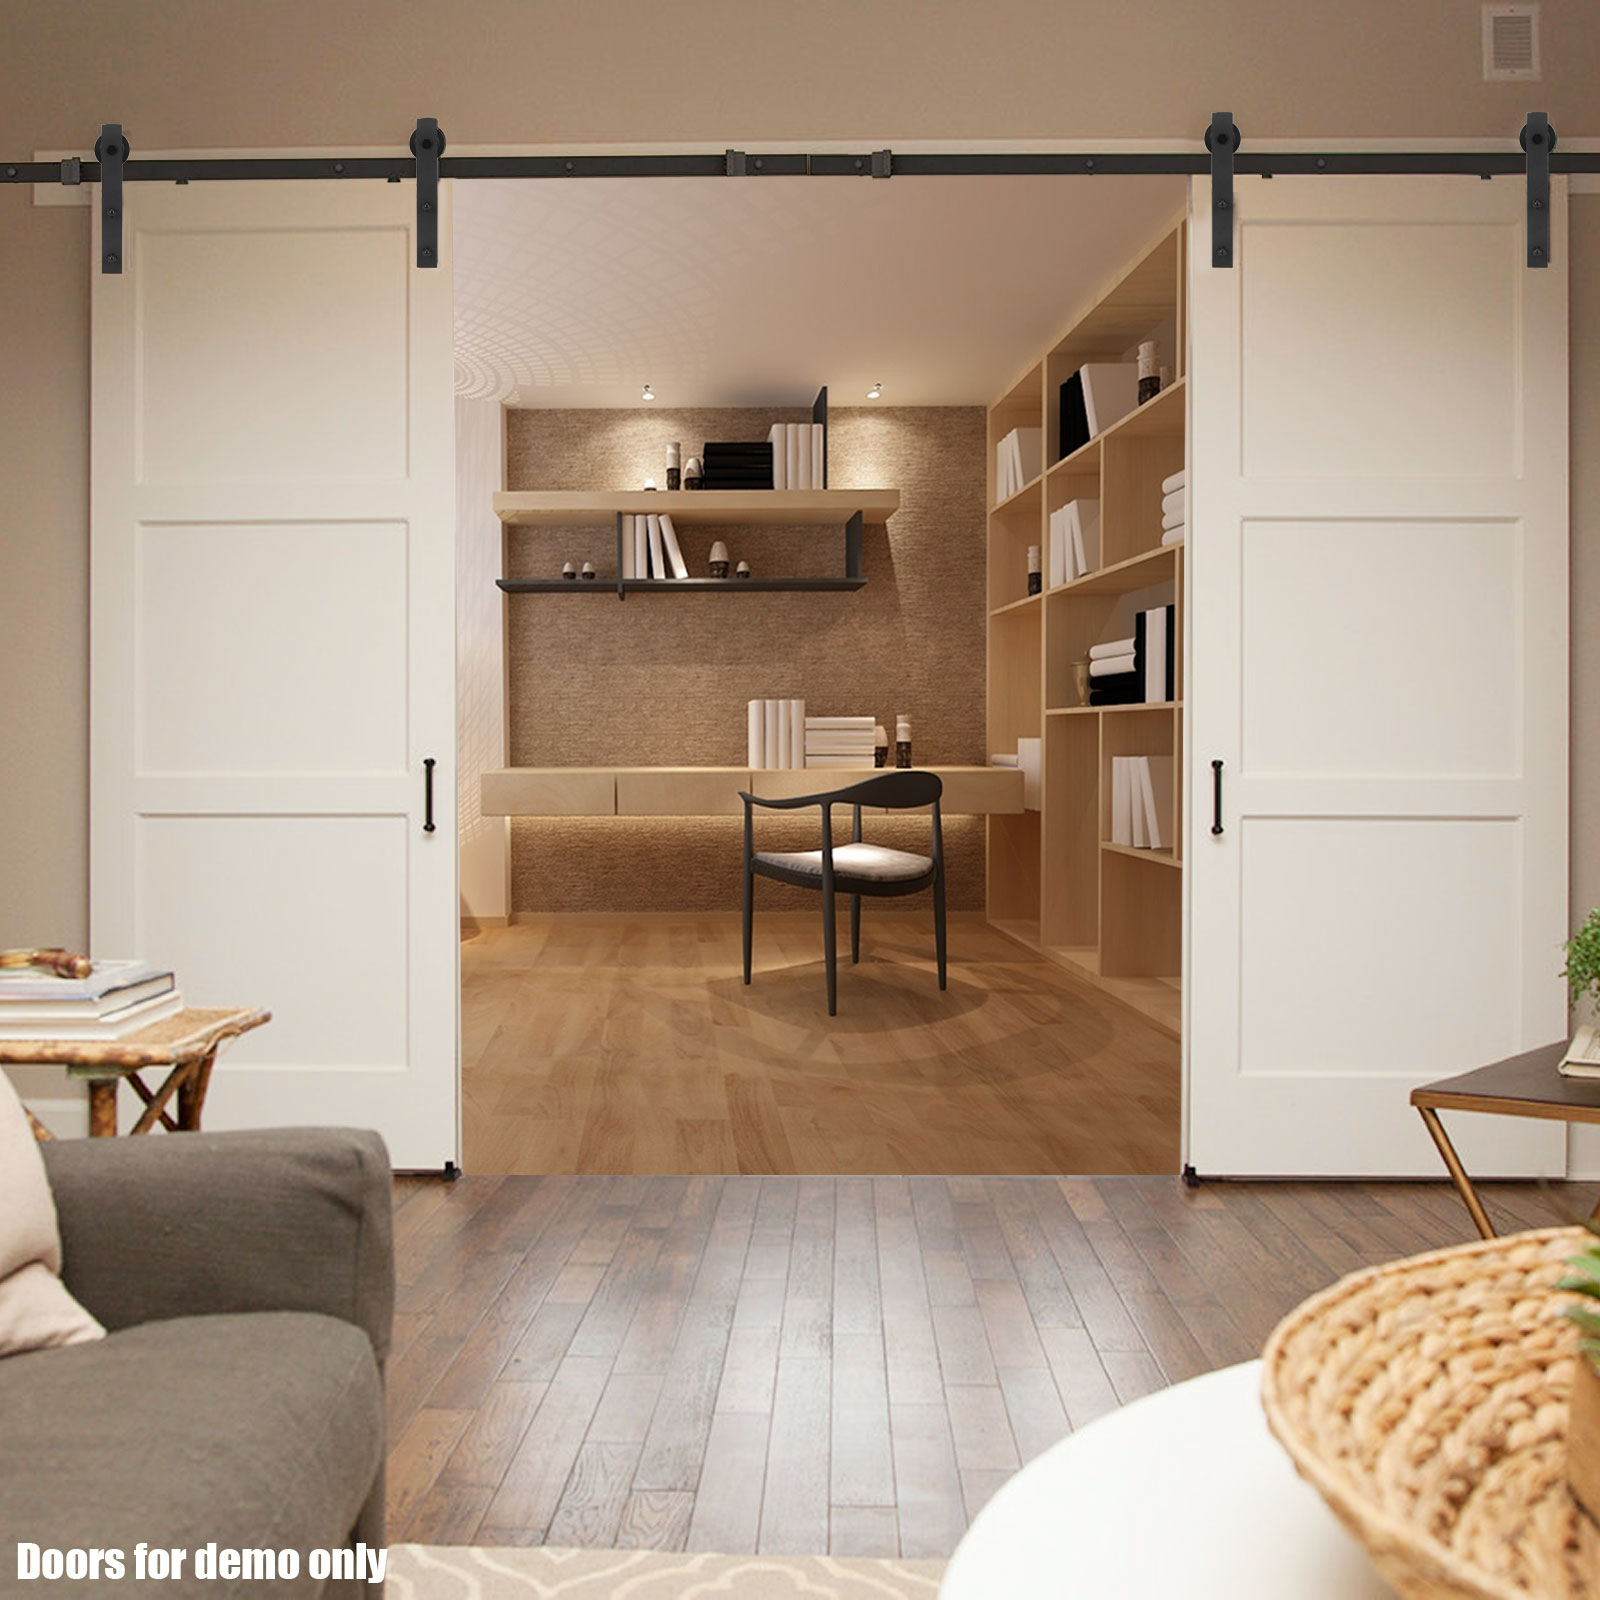 20 Home Offices With Sliding Barn Doors: 2M 4M Sliding Barn Door Hardware Track Set Home Office